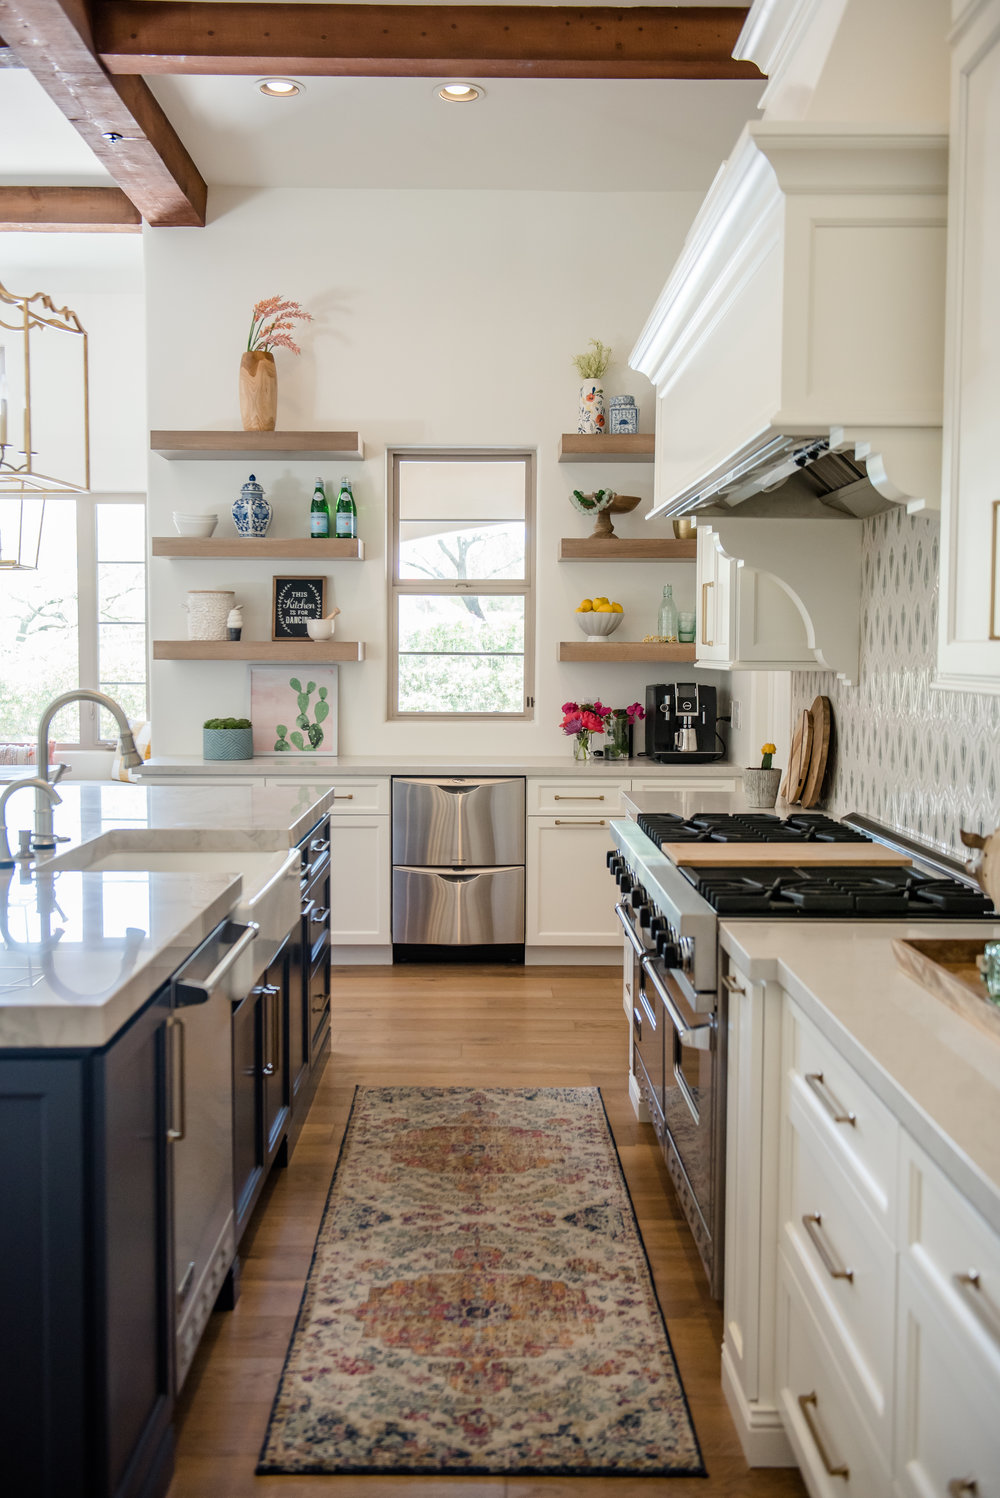 24+kitchen+hood+pots+stripedstools+navyblueisland+backsplashtile+openshelves+pendants+brasslighting.jpg